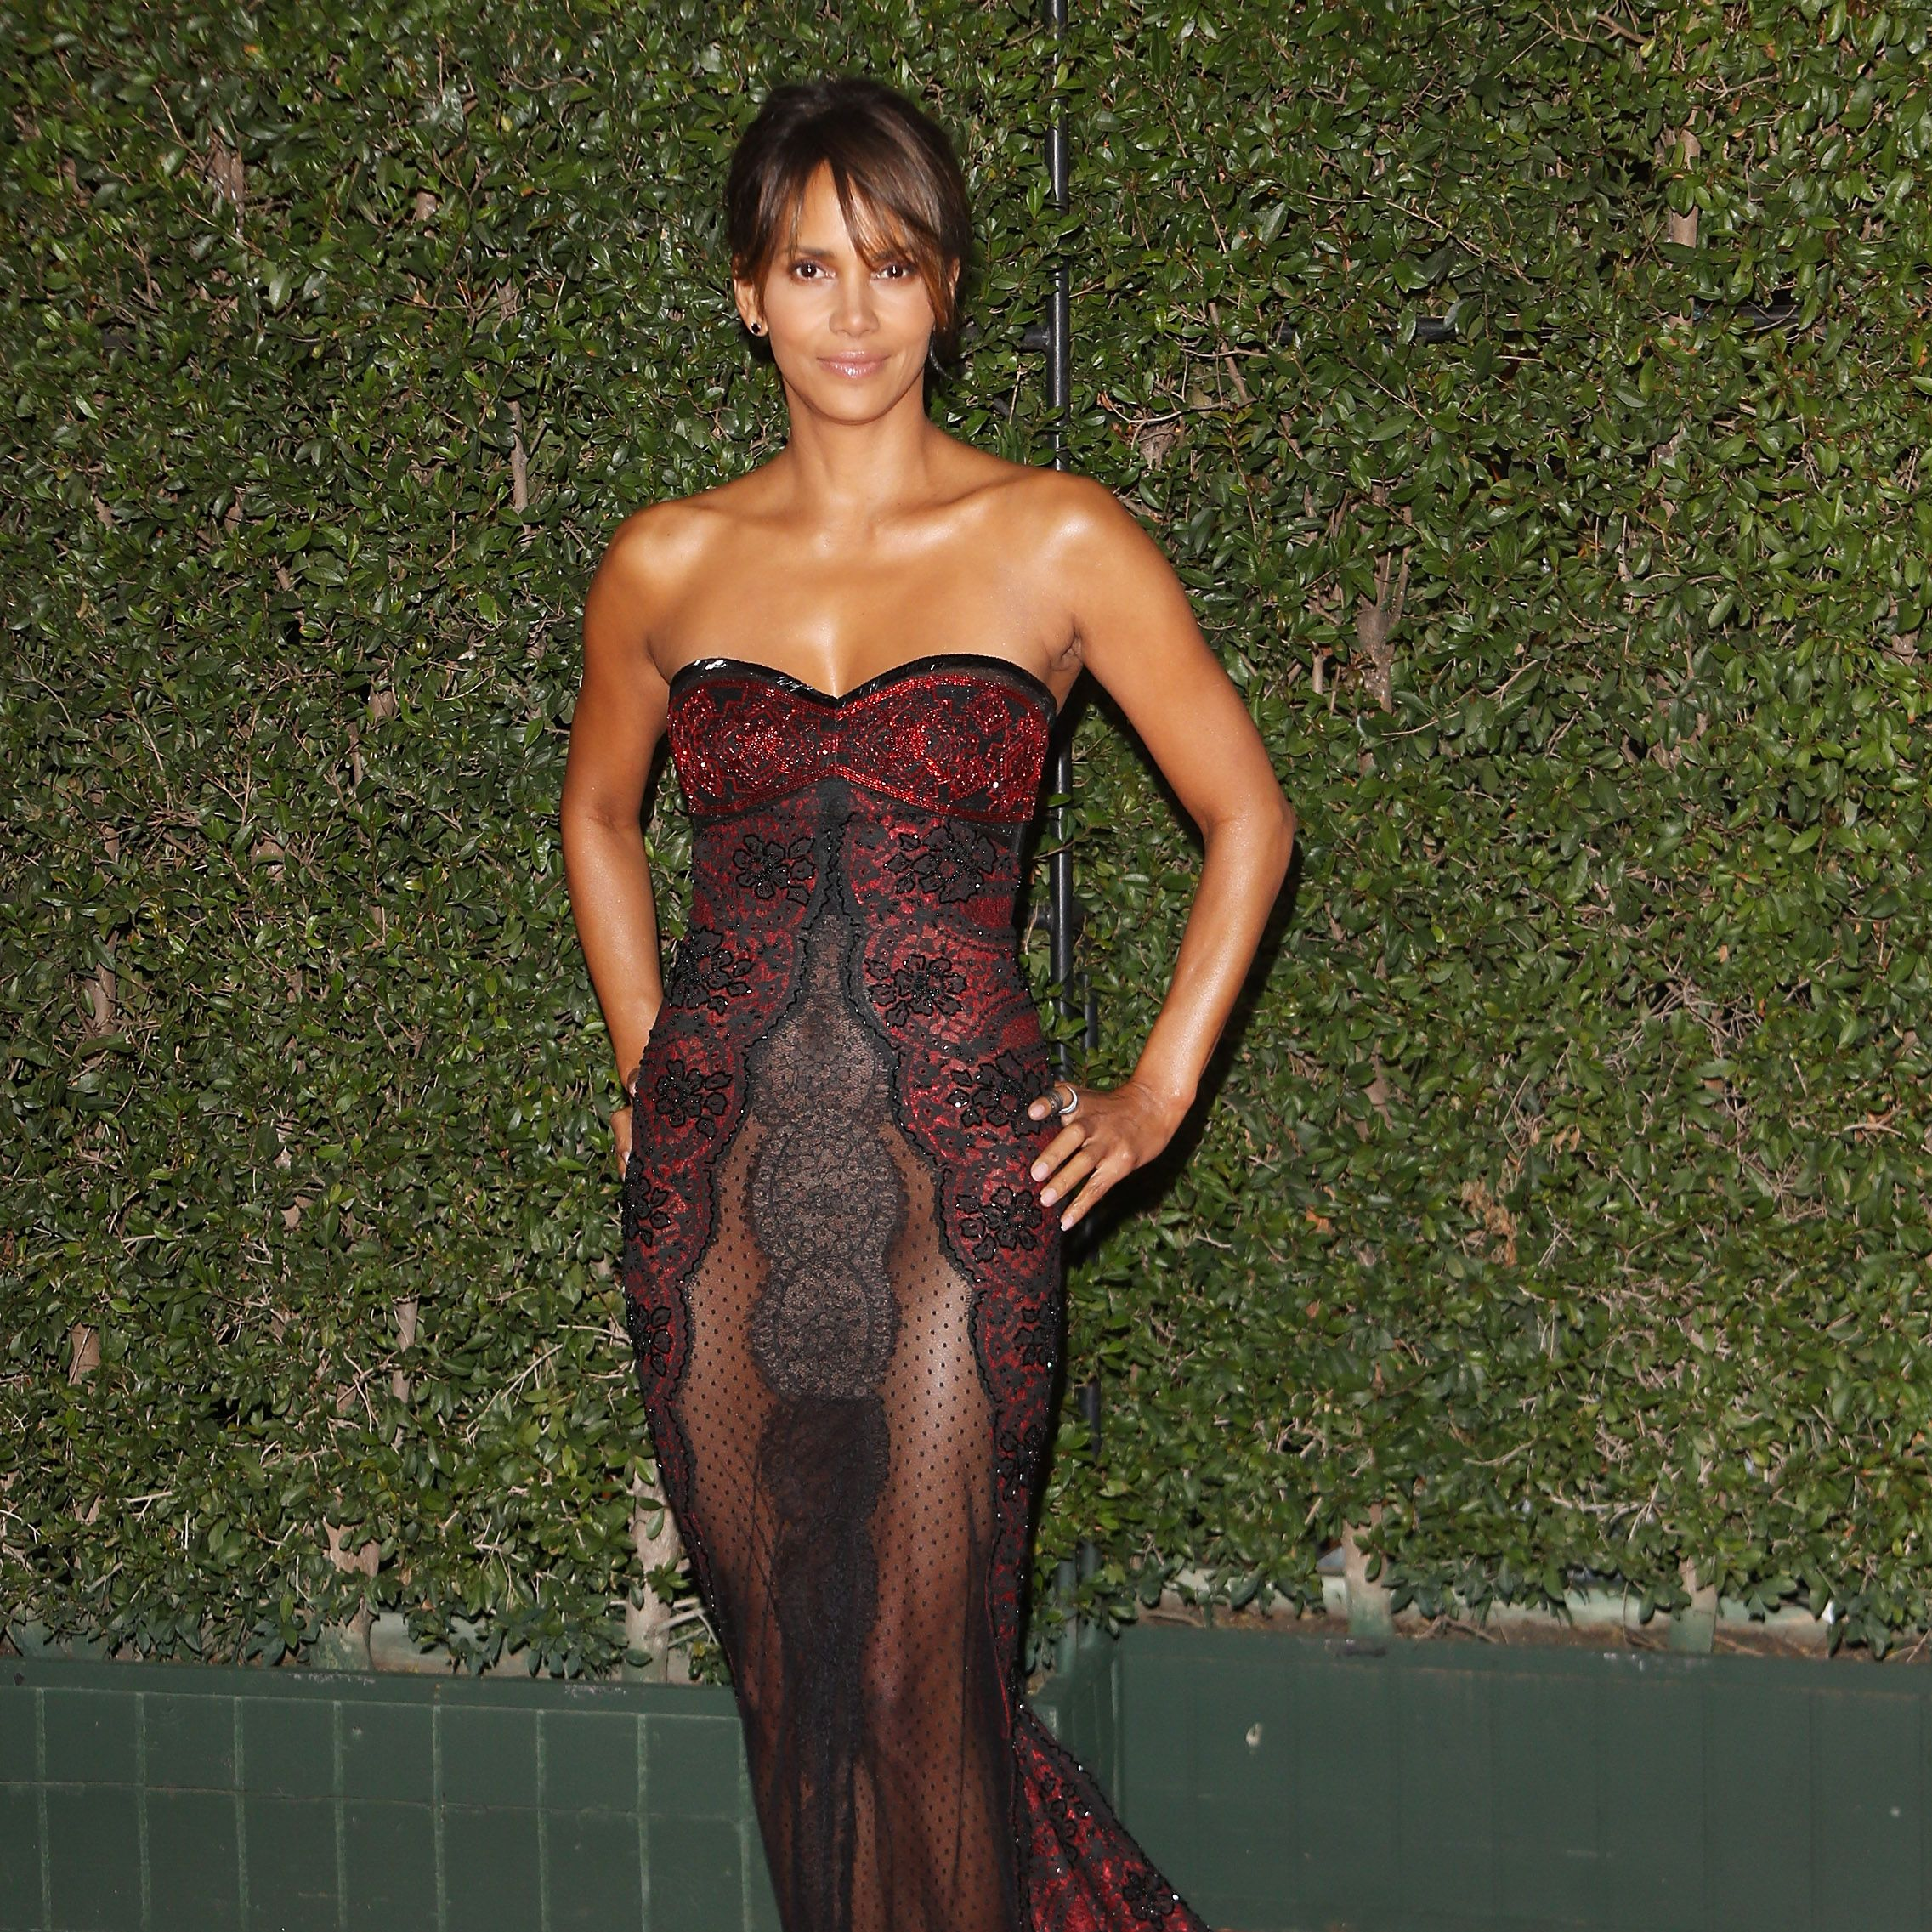 Halle Berry Just Shared 7 Moves That Helped Her Sculpt Those Insane Abs